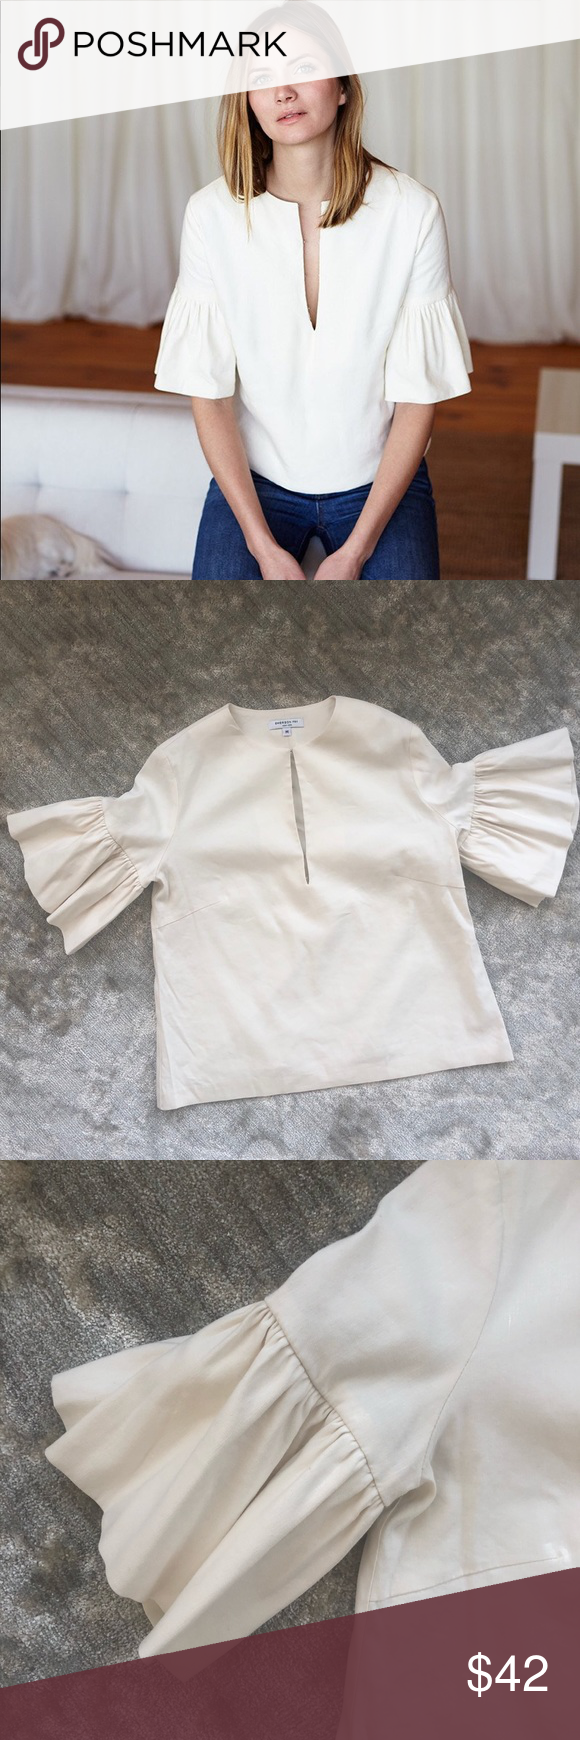 Emerson Fry Mod Ruffle Top Ivory Emerson Fry Mod Ruffle Top, size Medium. EUC.  Wear to work, wear with jeans, a top defined by what you pair it with, adaptable, fun, unique, super comfortable. A t-shirt alternative.   A 60s inspired shape with ruffled bell sleeves. We chose to cut this in a really soft, buttery, slightly structured linen blend.    Front opening 8 with 4 hook and eye  Dry clean only  55% linen, 43% Viscose, 2% stretch  Made in NYC Emerson Fry Tops Blouses #emersonfry